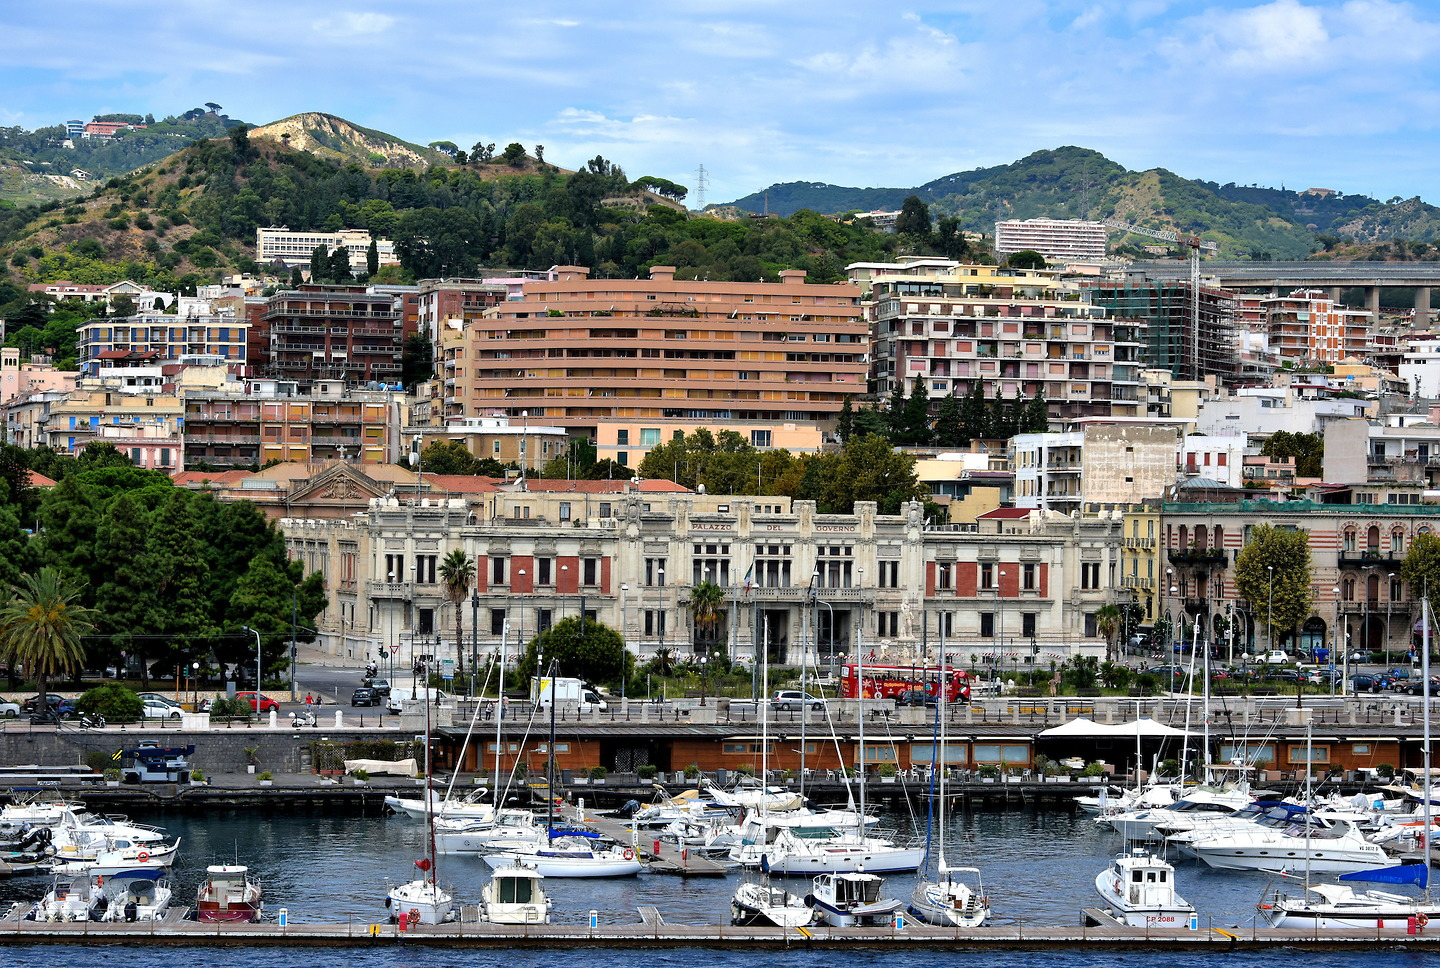 Cityscape and History of Messina, Italy - Encircle Photos